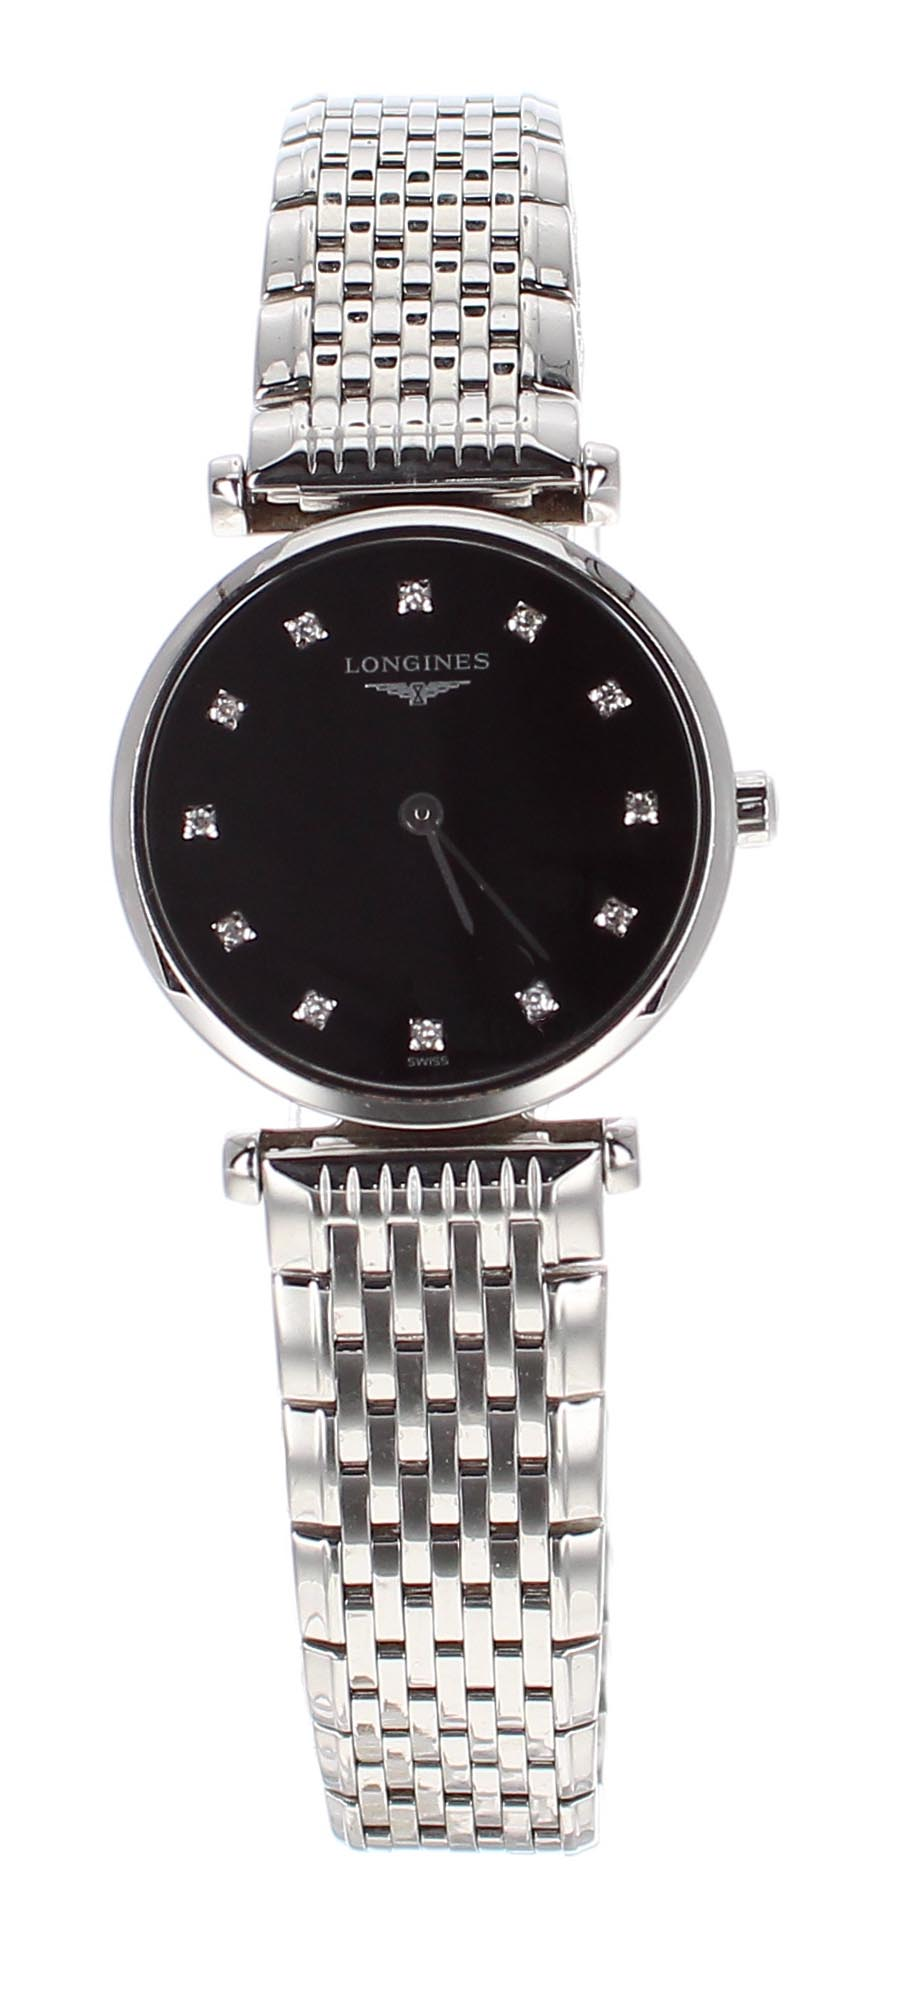 Lot 52 - Longines La Grande Classique stainless steel lady's bracelet watch, ref. L4 209 4, black dial with